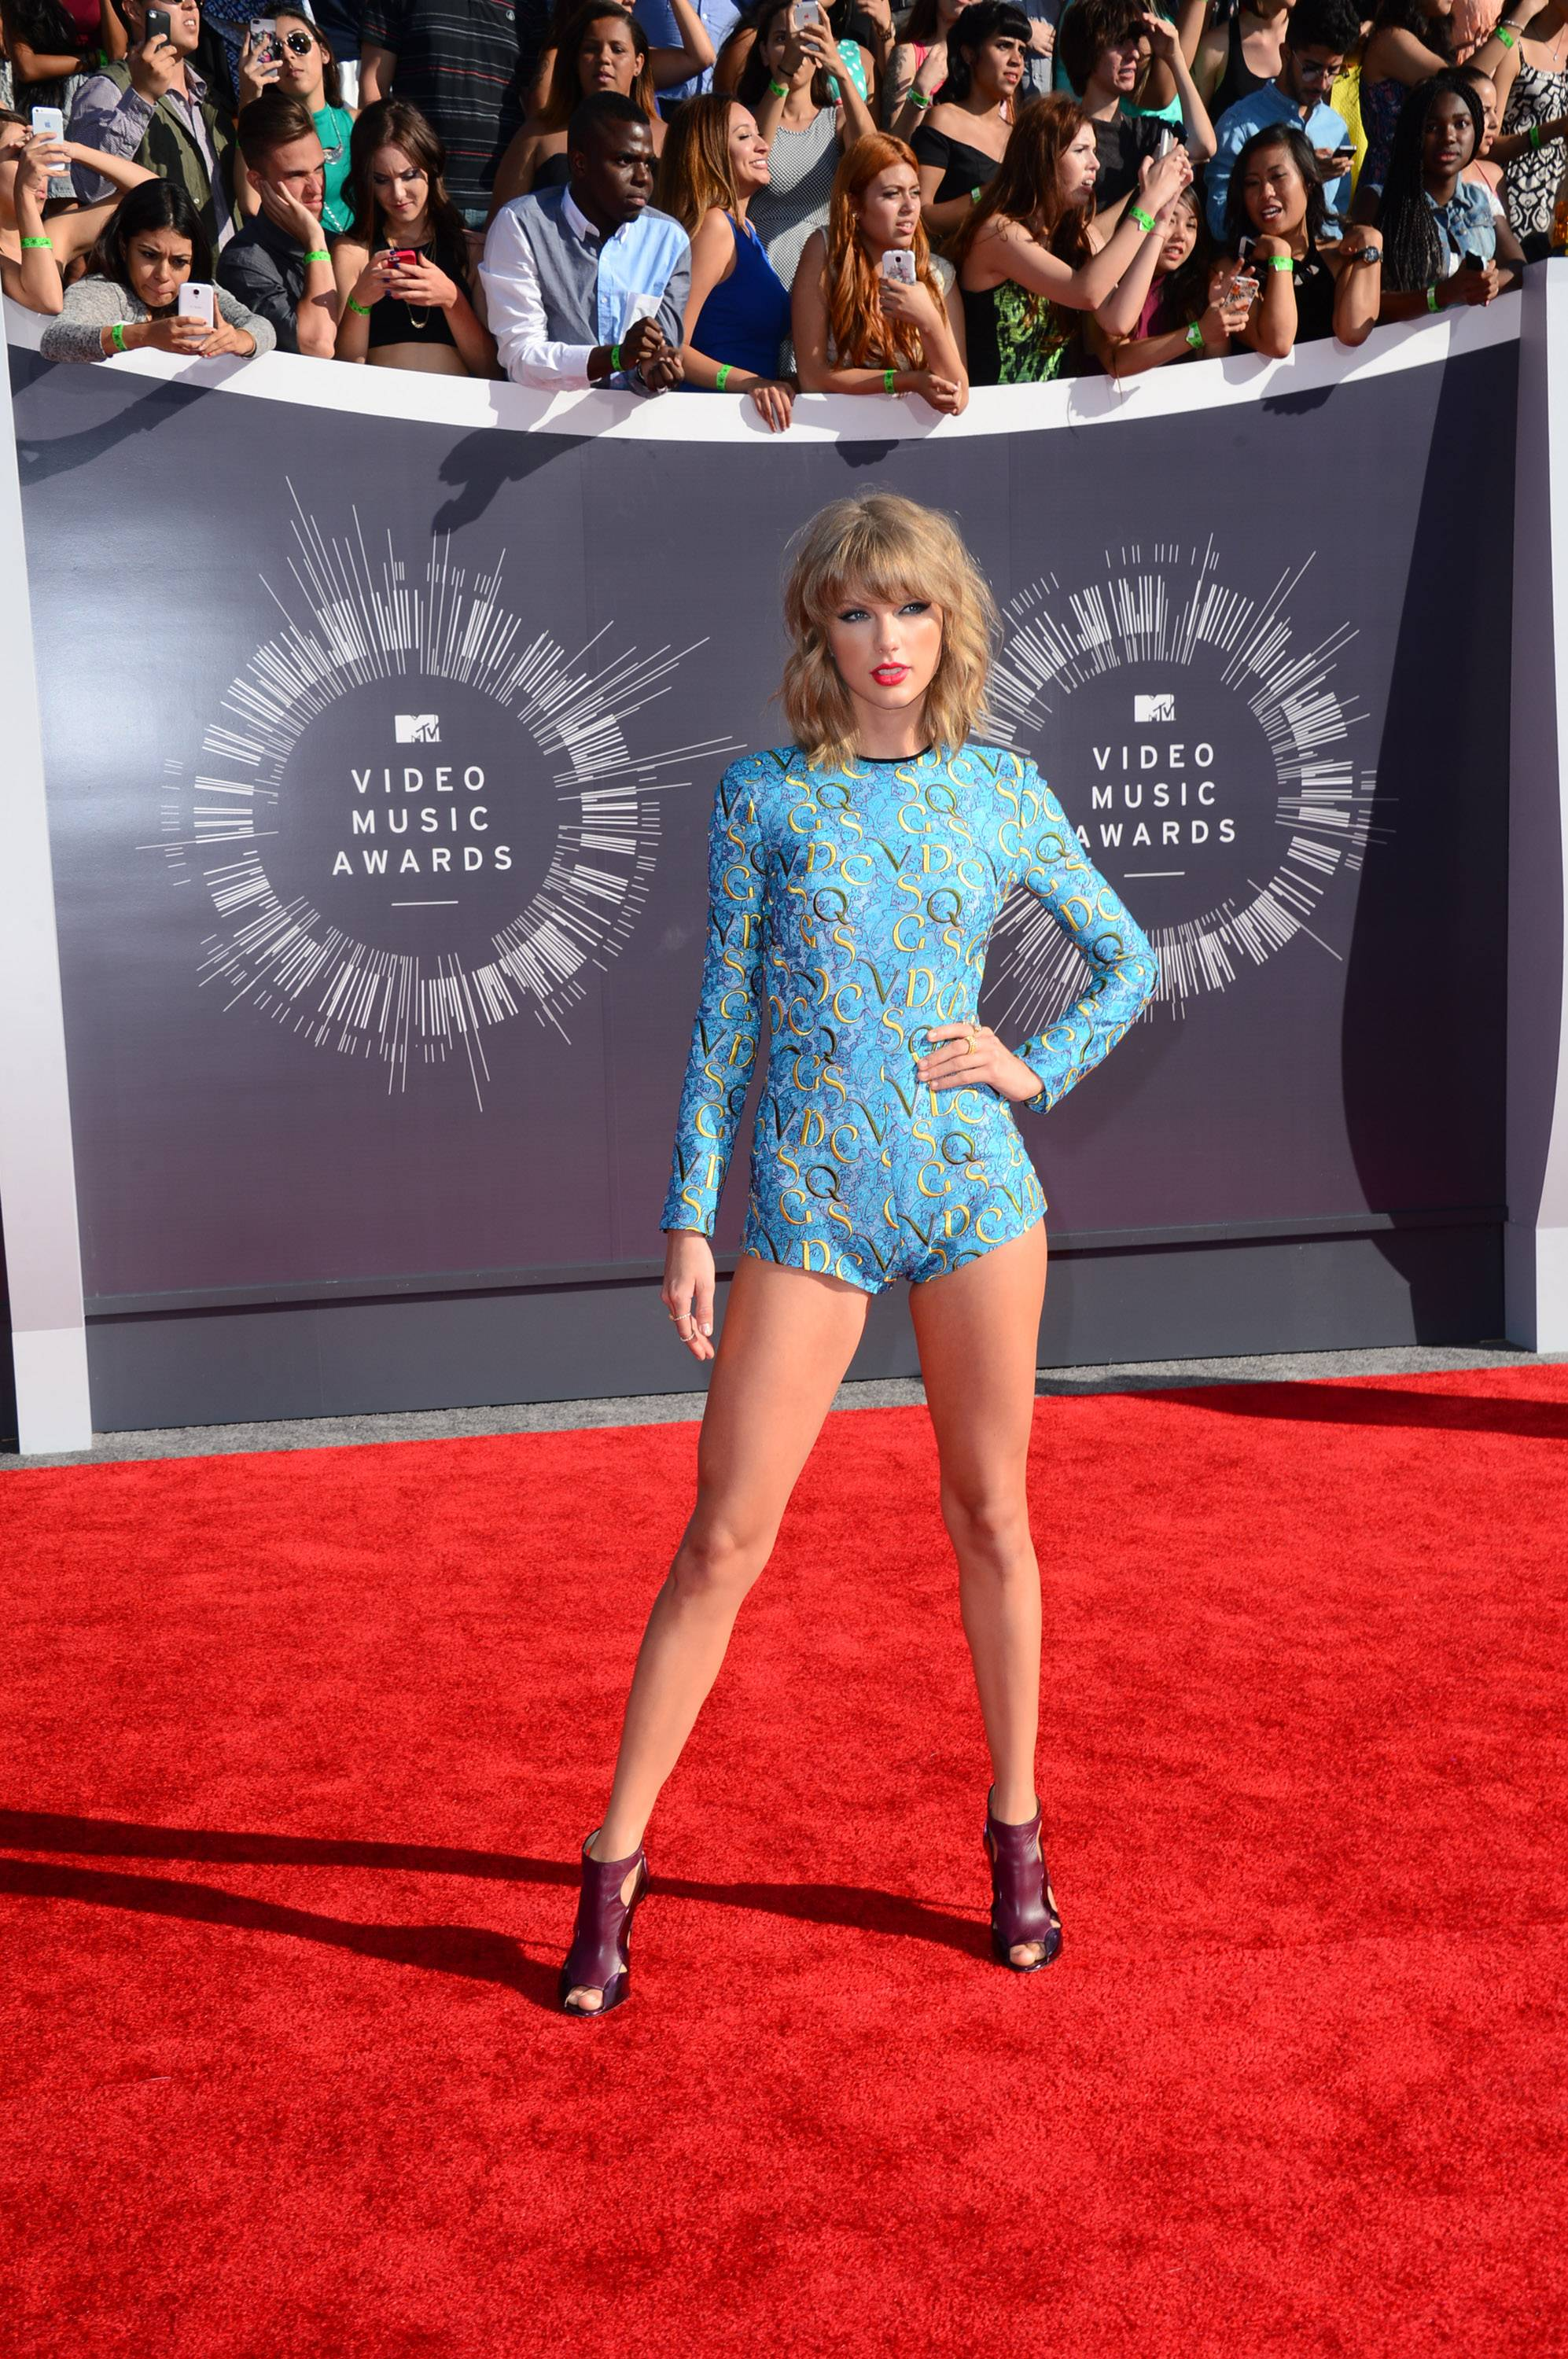 Taylor Swift and her romper walk the VMAs red carpet.